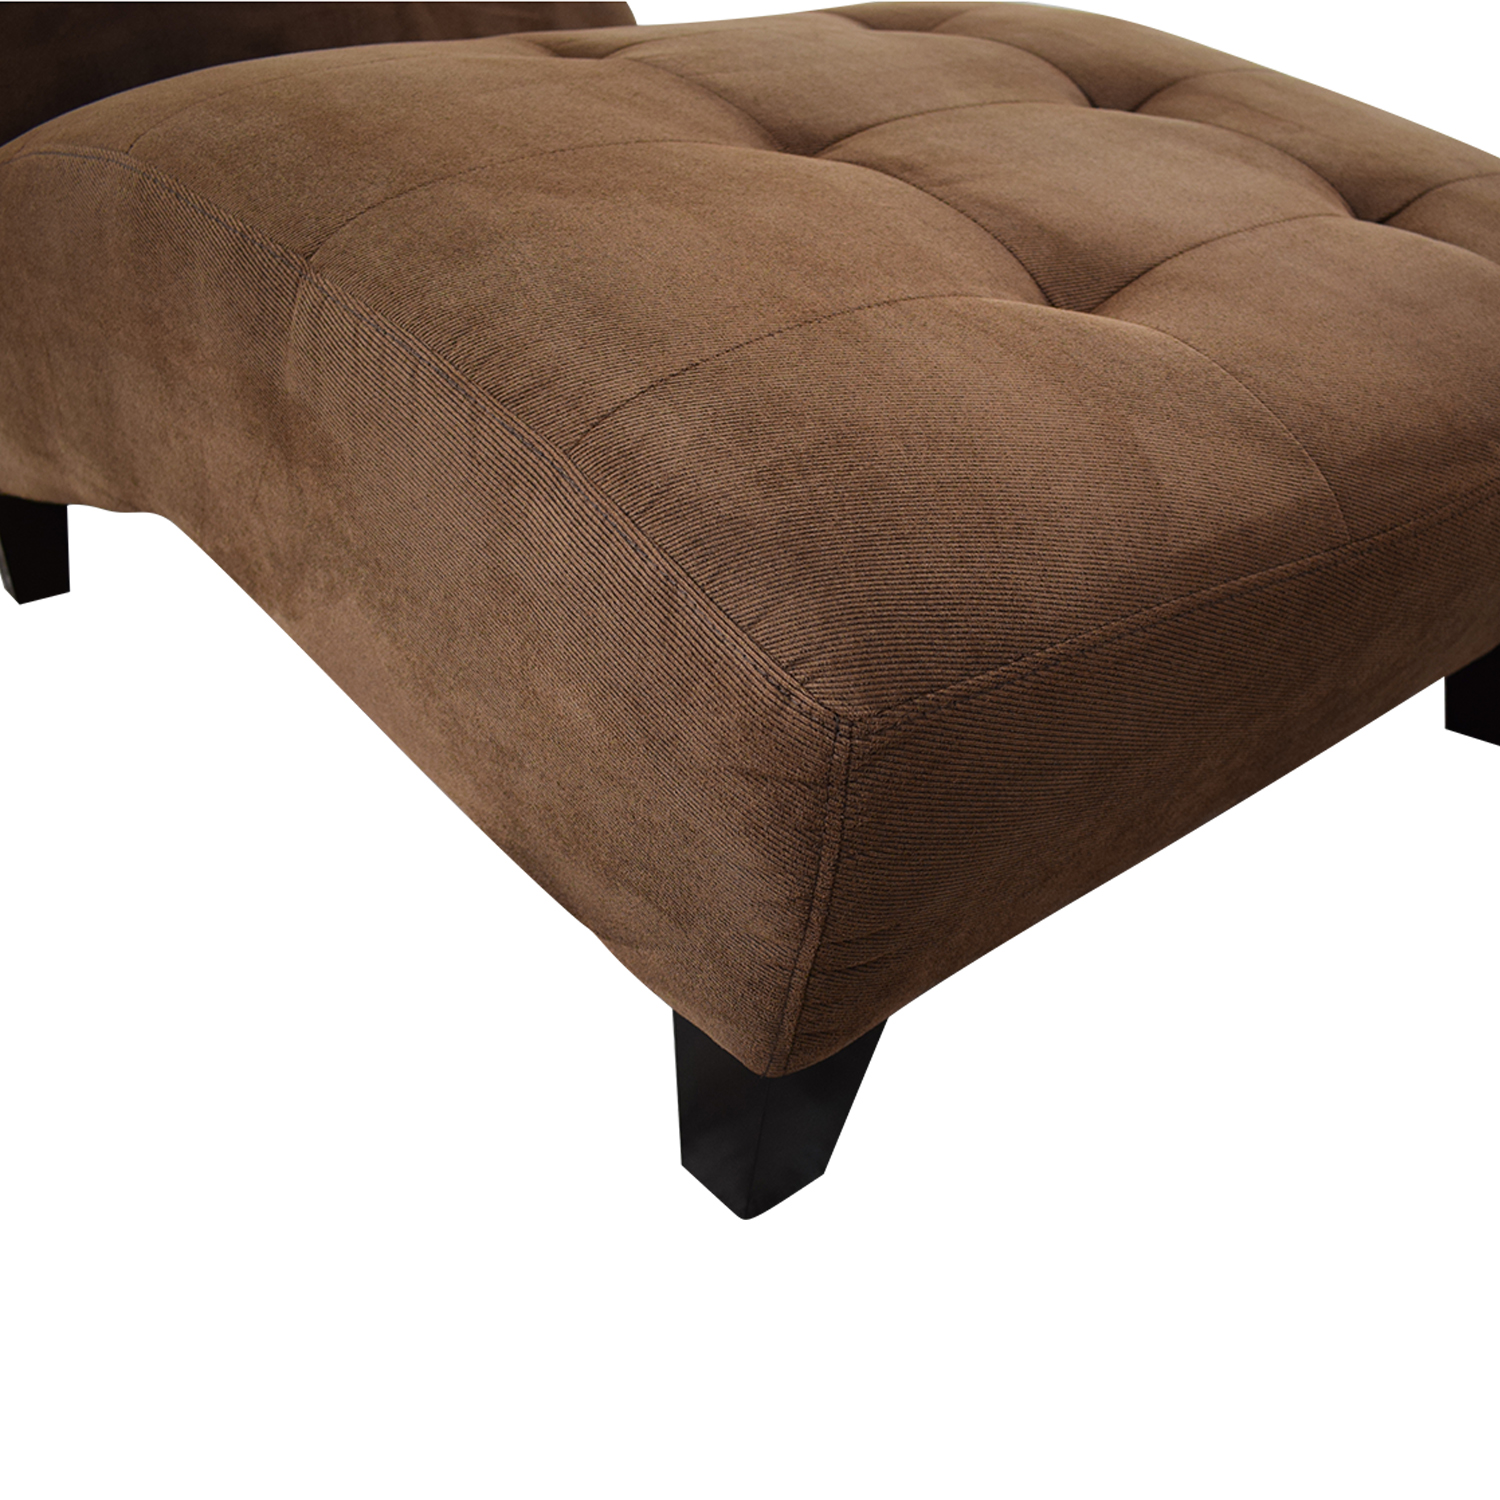 Macy's Macy's Arched Chaise Lounge price